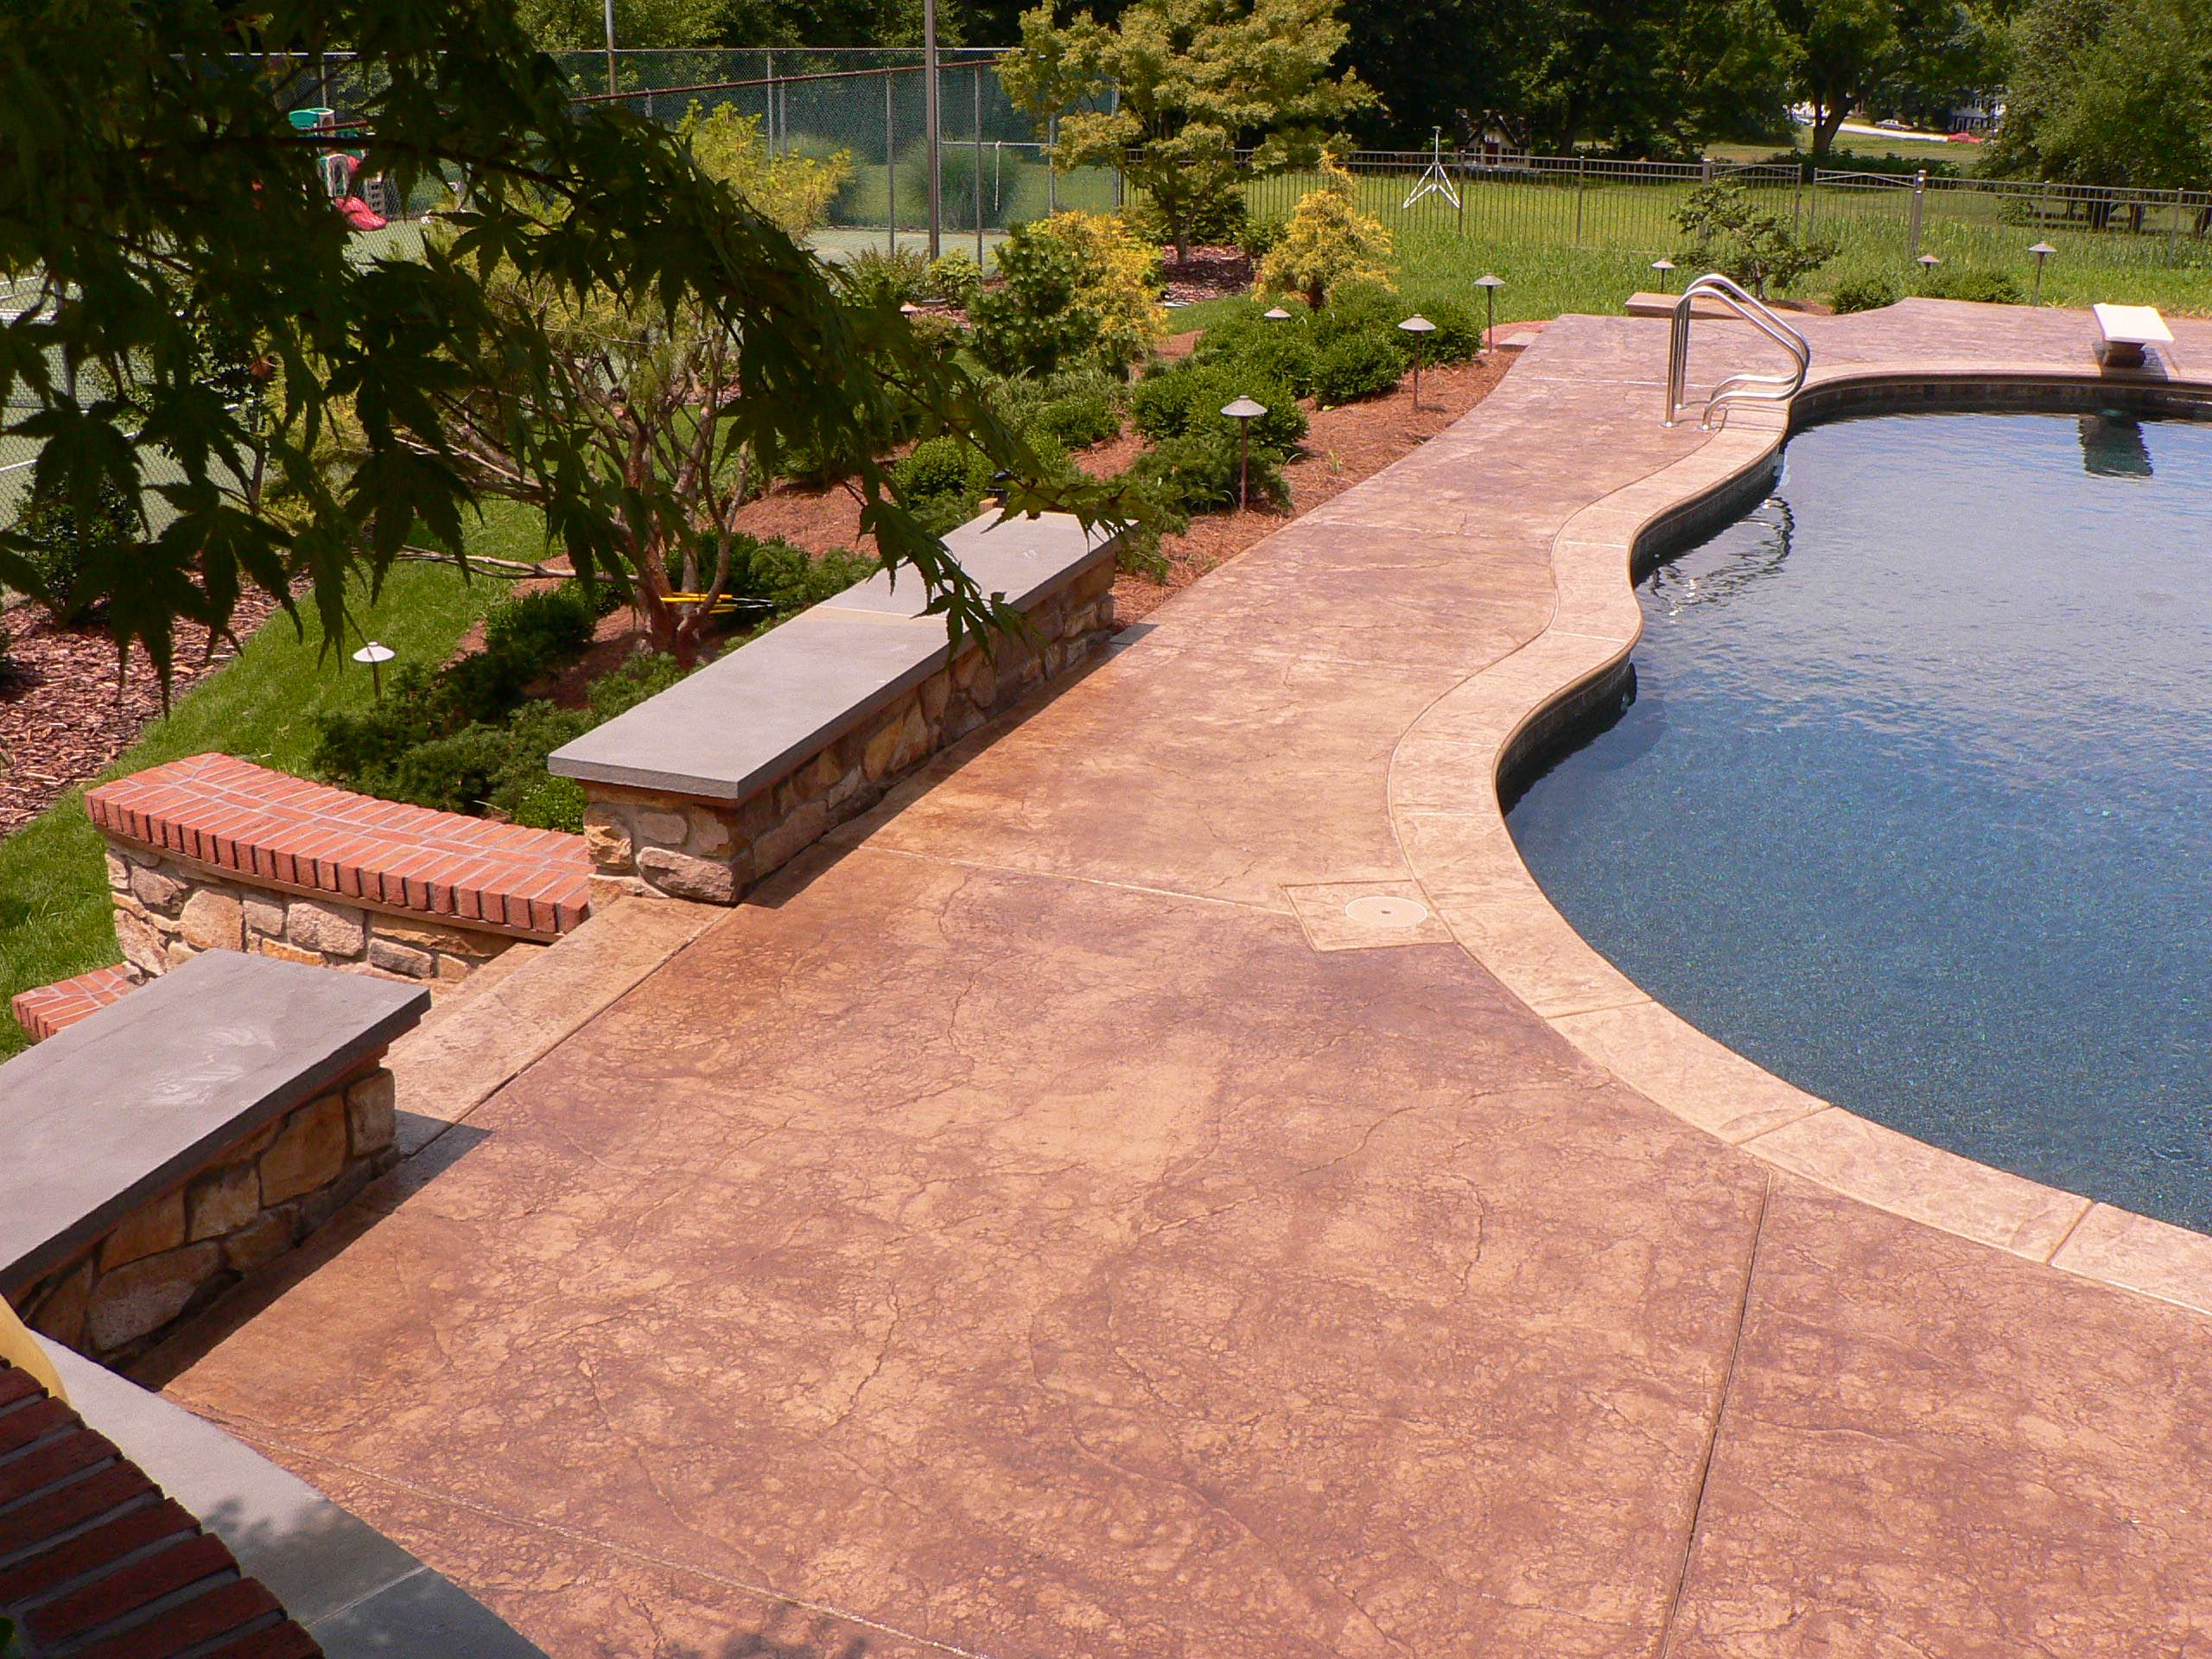 Looking For Pool Decks Stone Design Pavers Design Ideas?